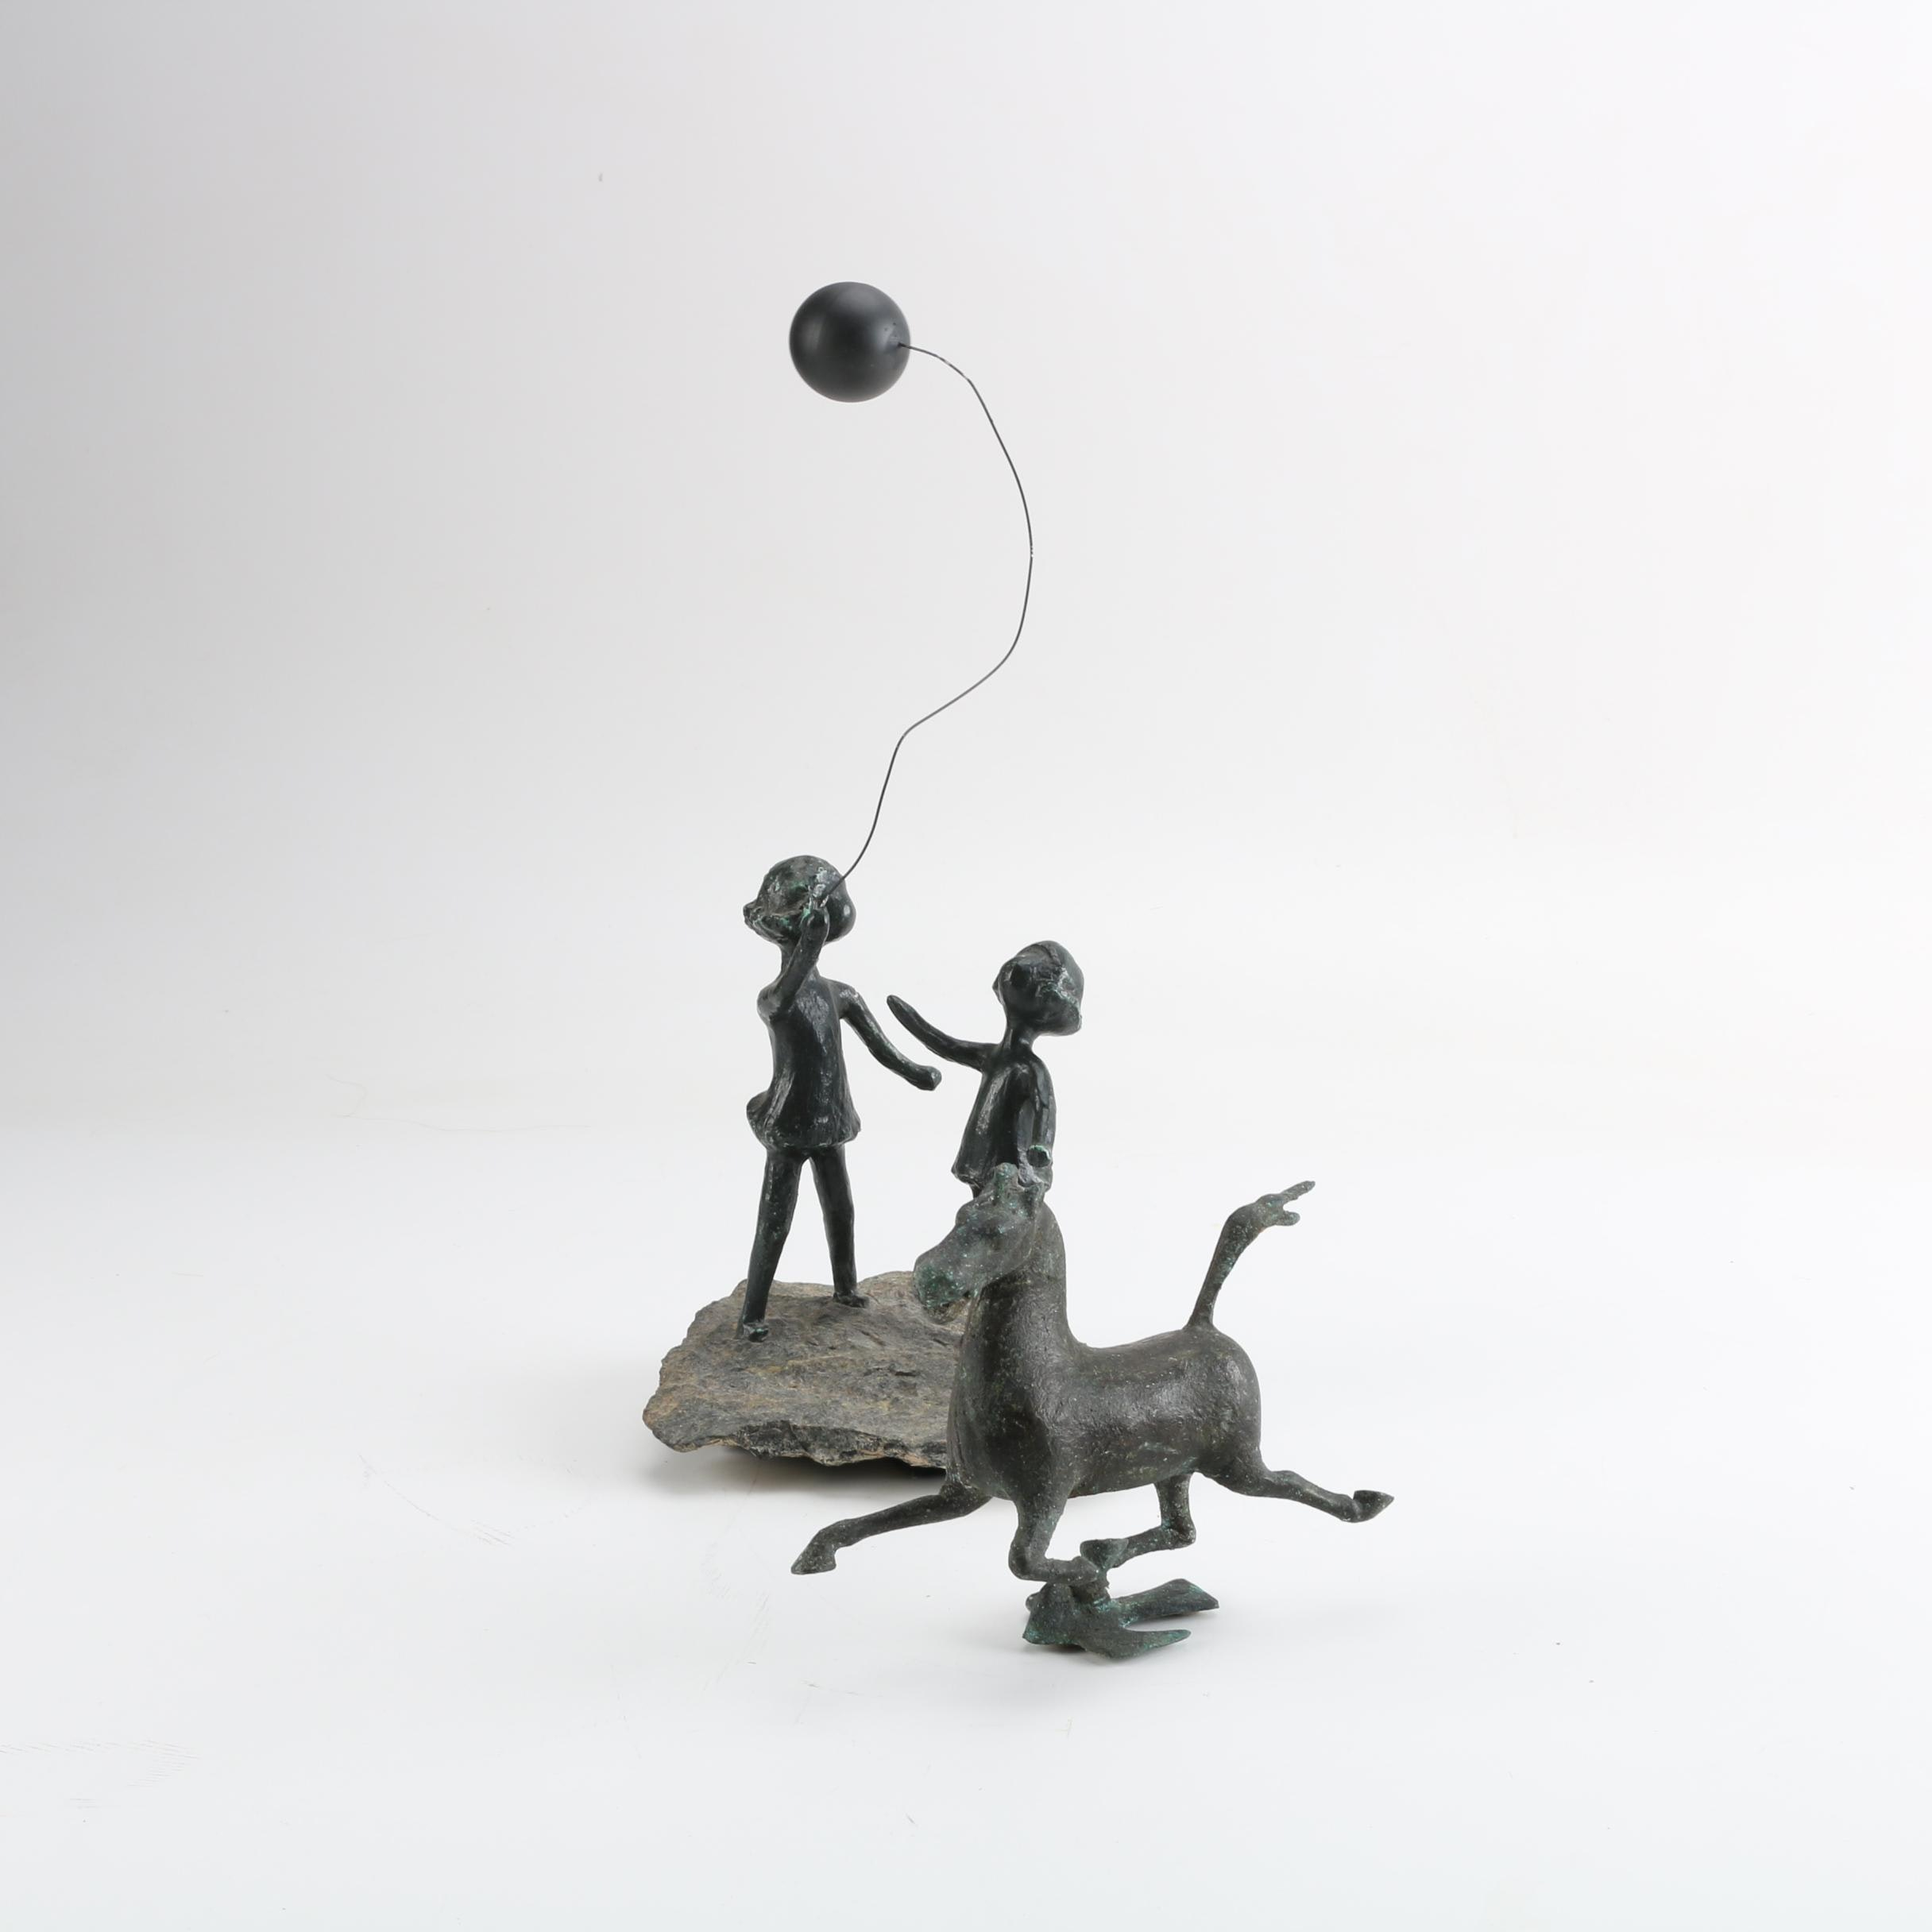 Cast Iron Children with Balloon Figurine and Galloping Horse Figurine